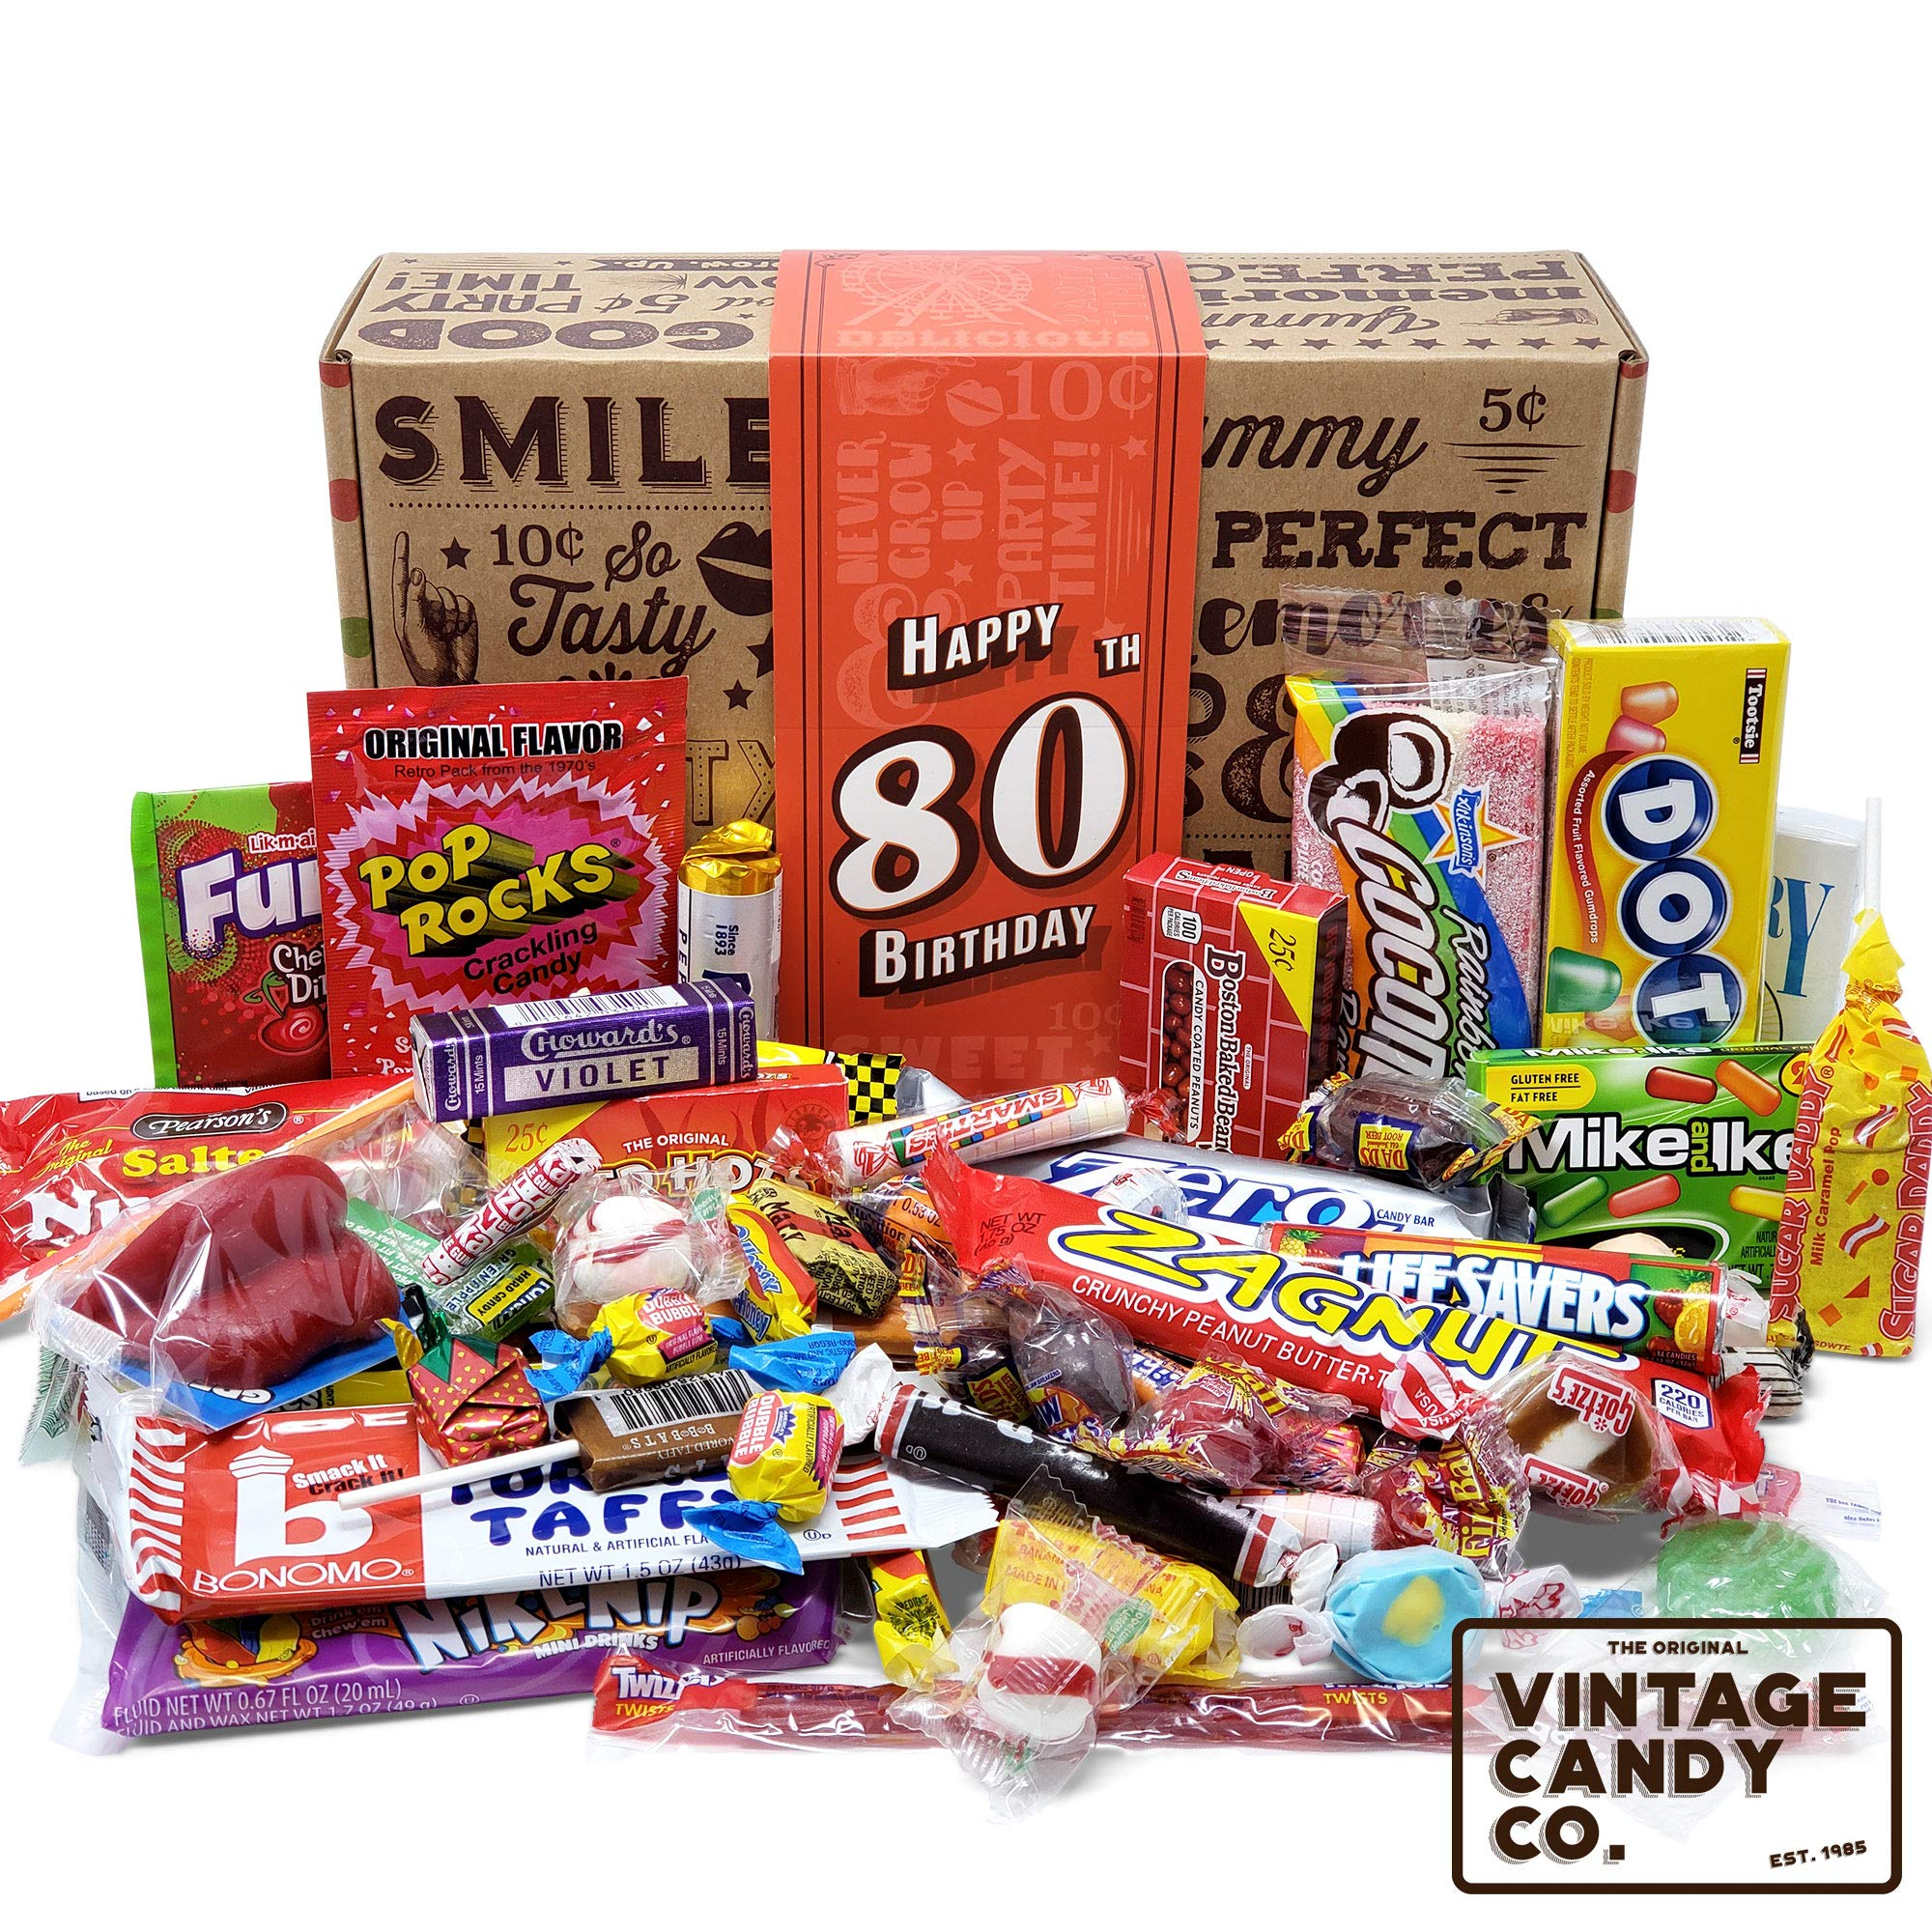 VINTAGE CANDY CO. 80TH BIRTHDAY RETRO CANDY GIFT BOX - 1939 Decade Nostalgic Childhood Candies - Fun Gag Gift Basket for Milestone EIGHTIETH Birthday - PERFECT For Man Or Woman Turning 80 Years Old by Vintage Candy Co. (Image #1)